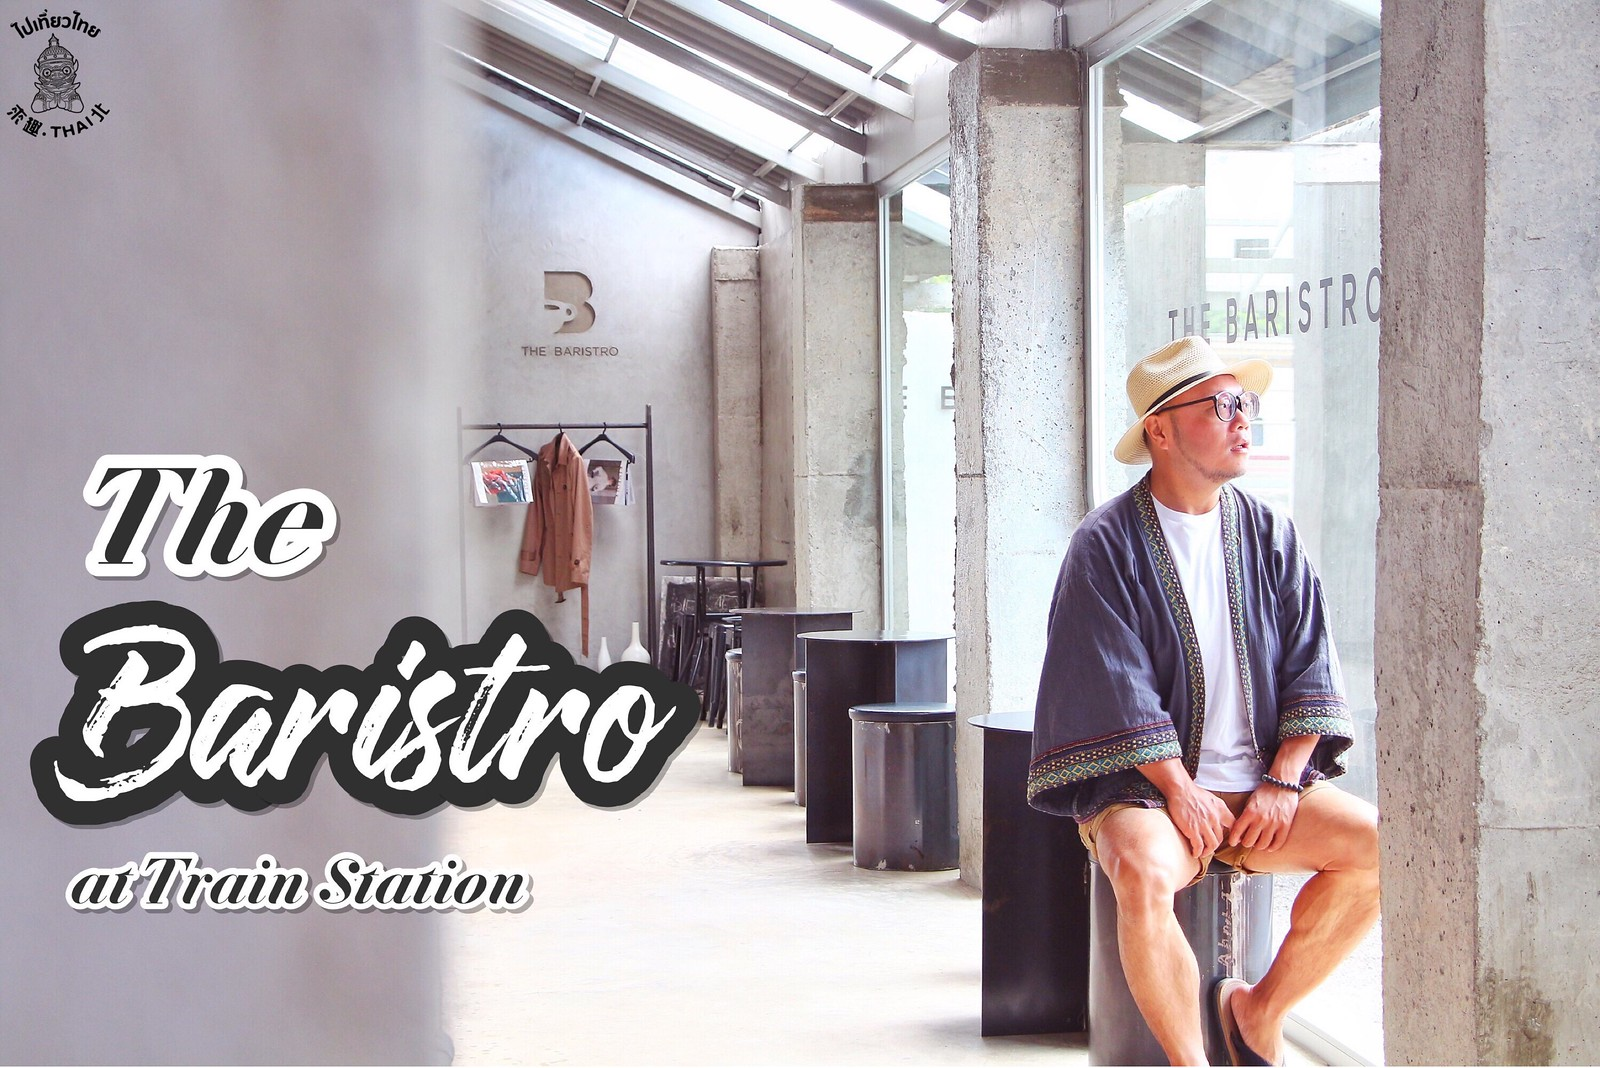 《The Baristro at Train Station》Baristro系列最新文青咖啡館